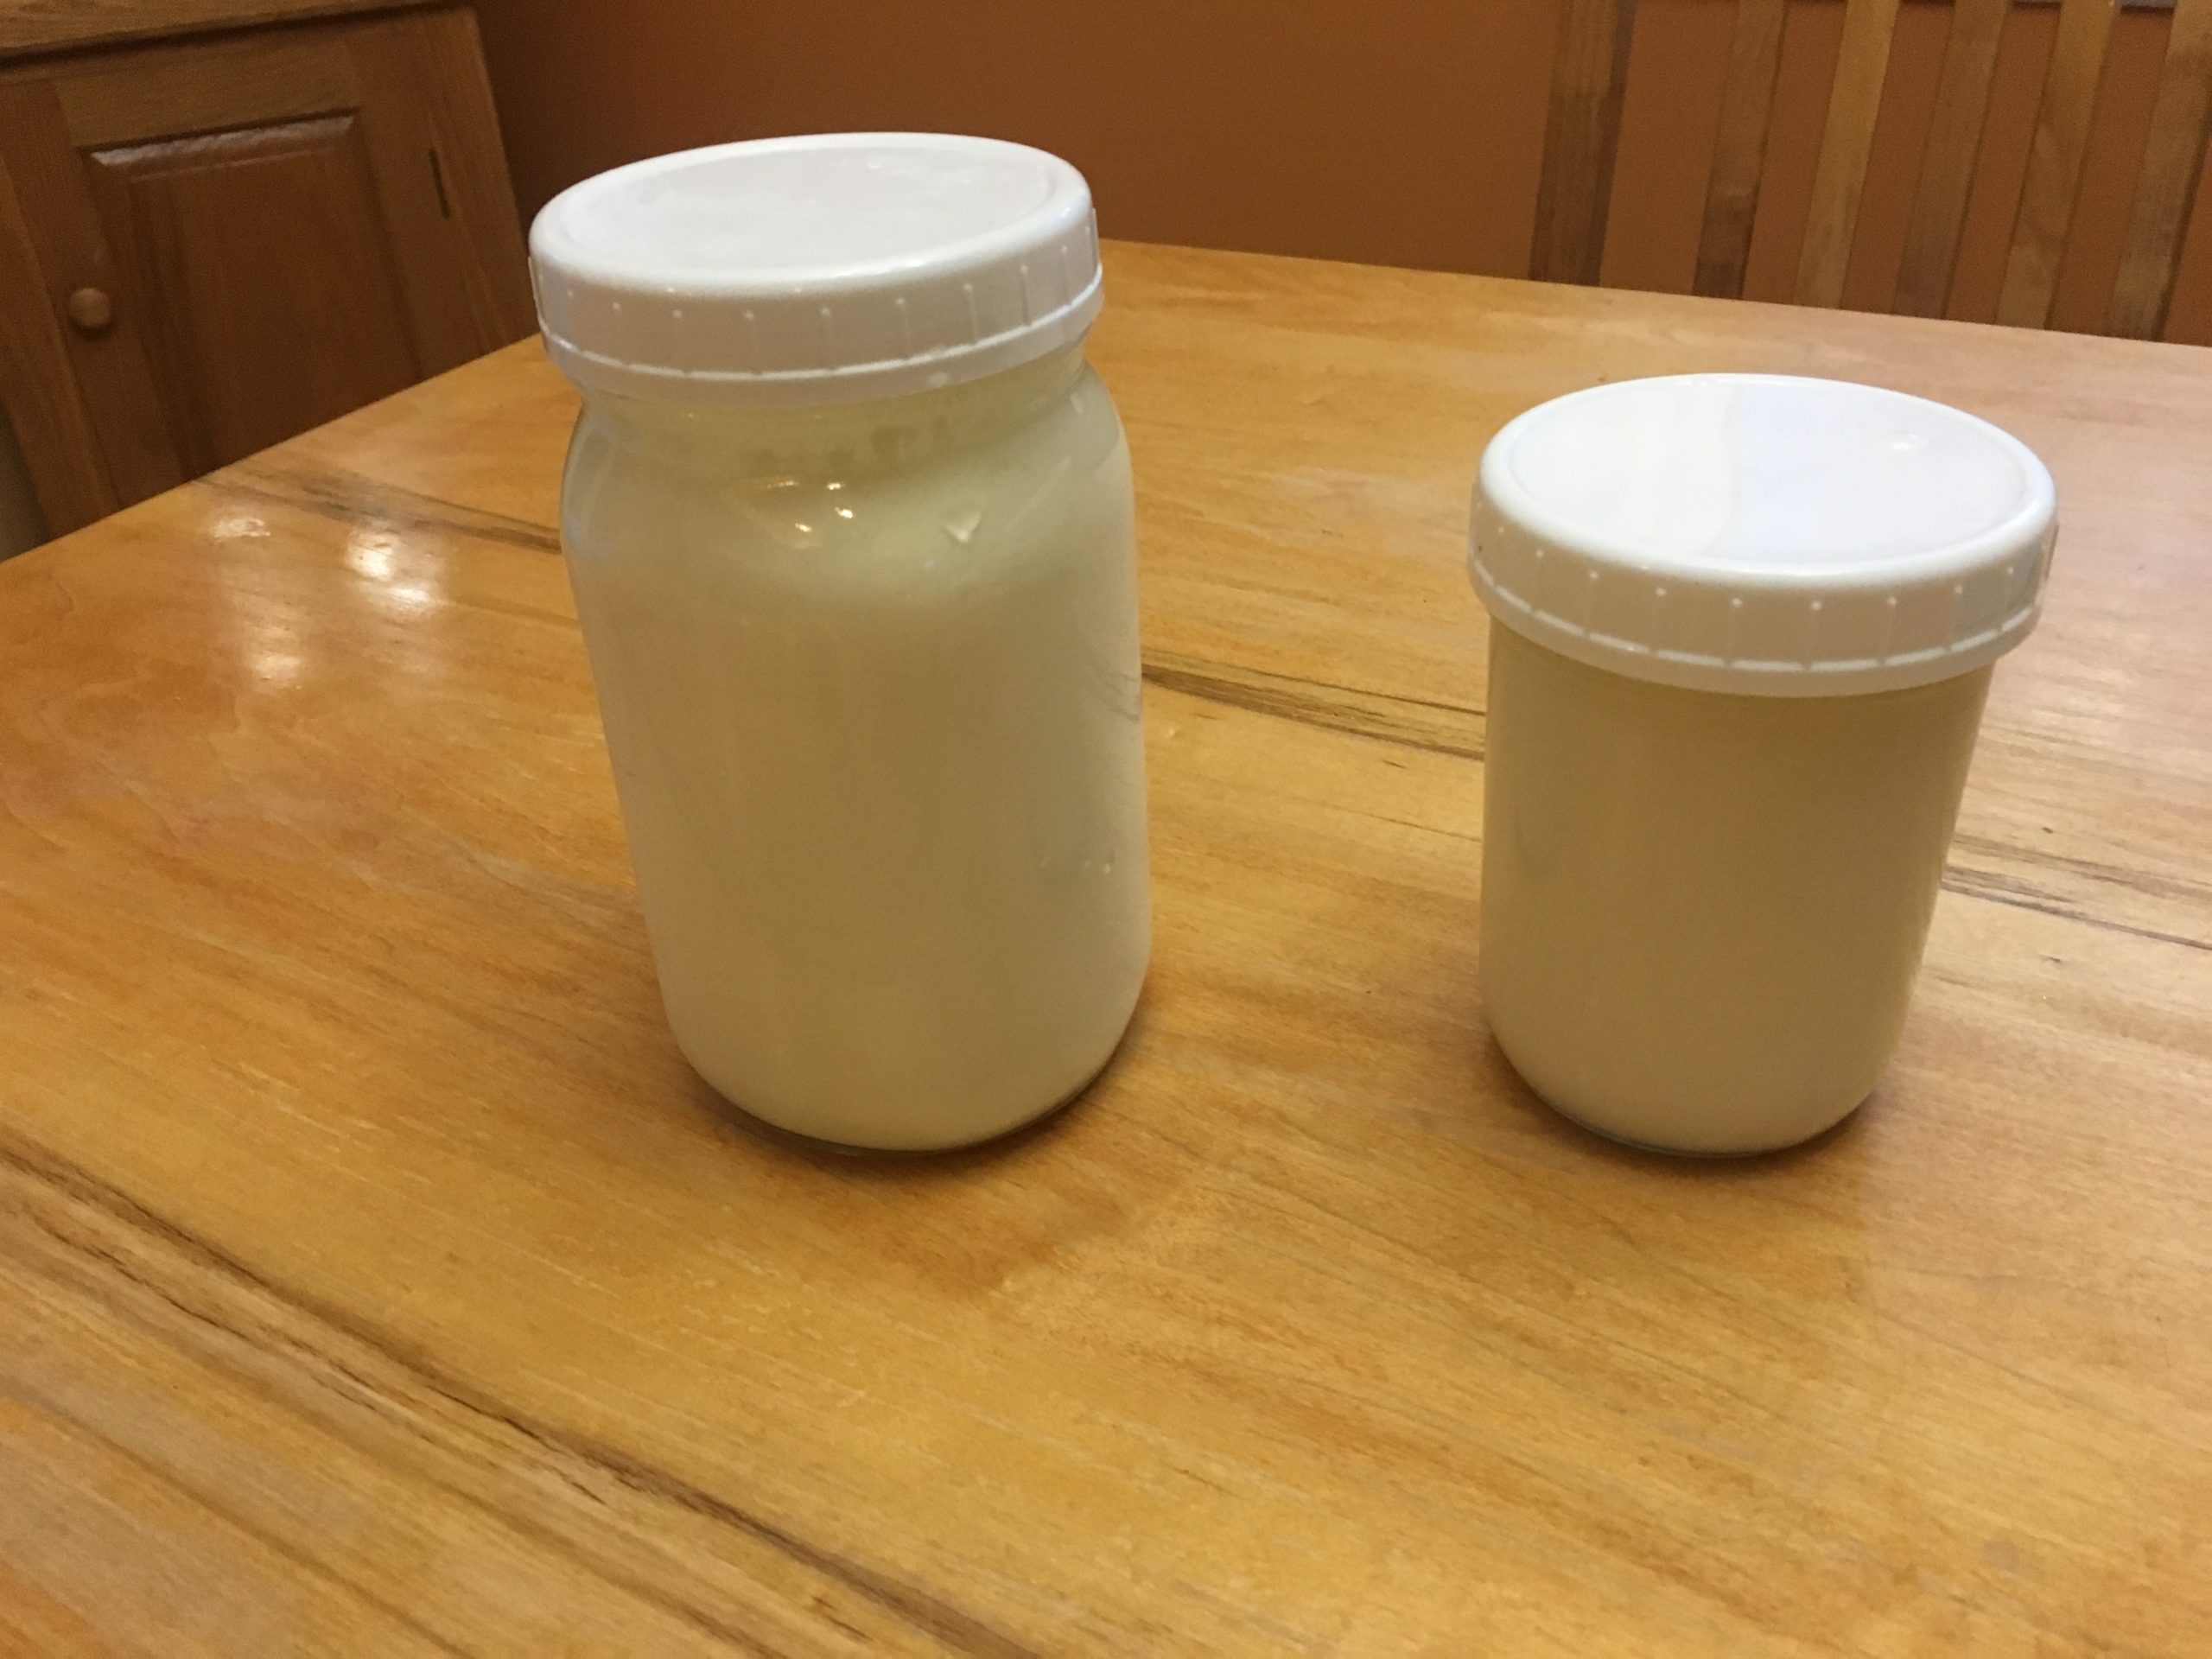 A pint-sized jar of homemade cream friach next to a quart-sized jar of yougurt.